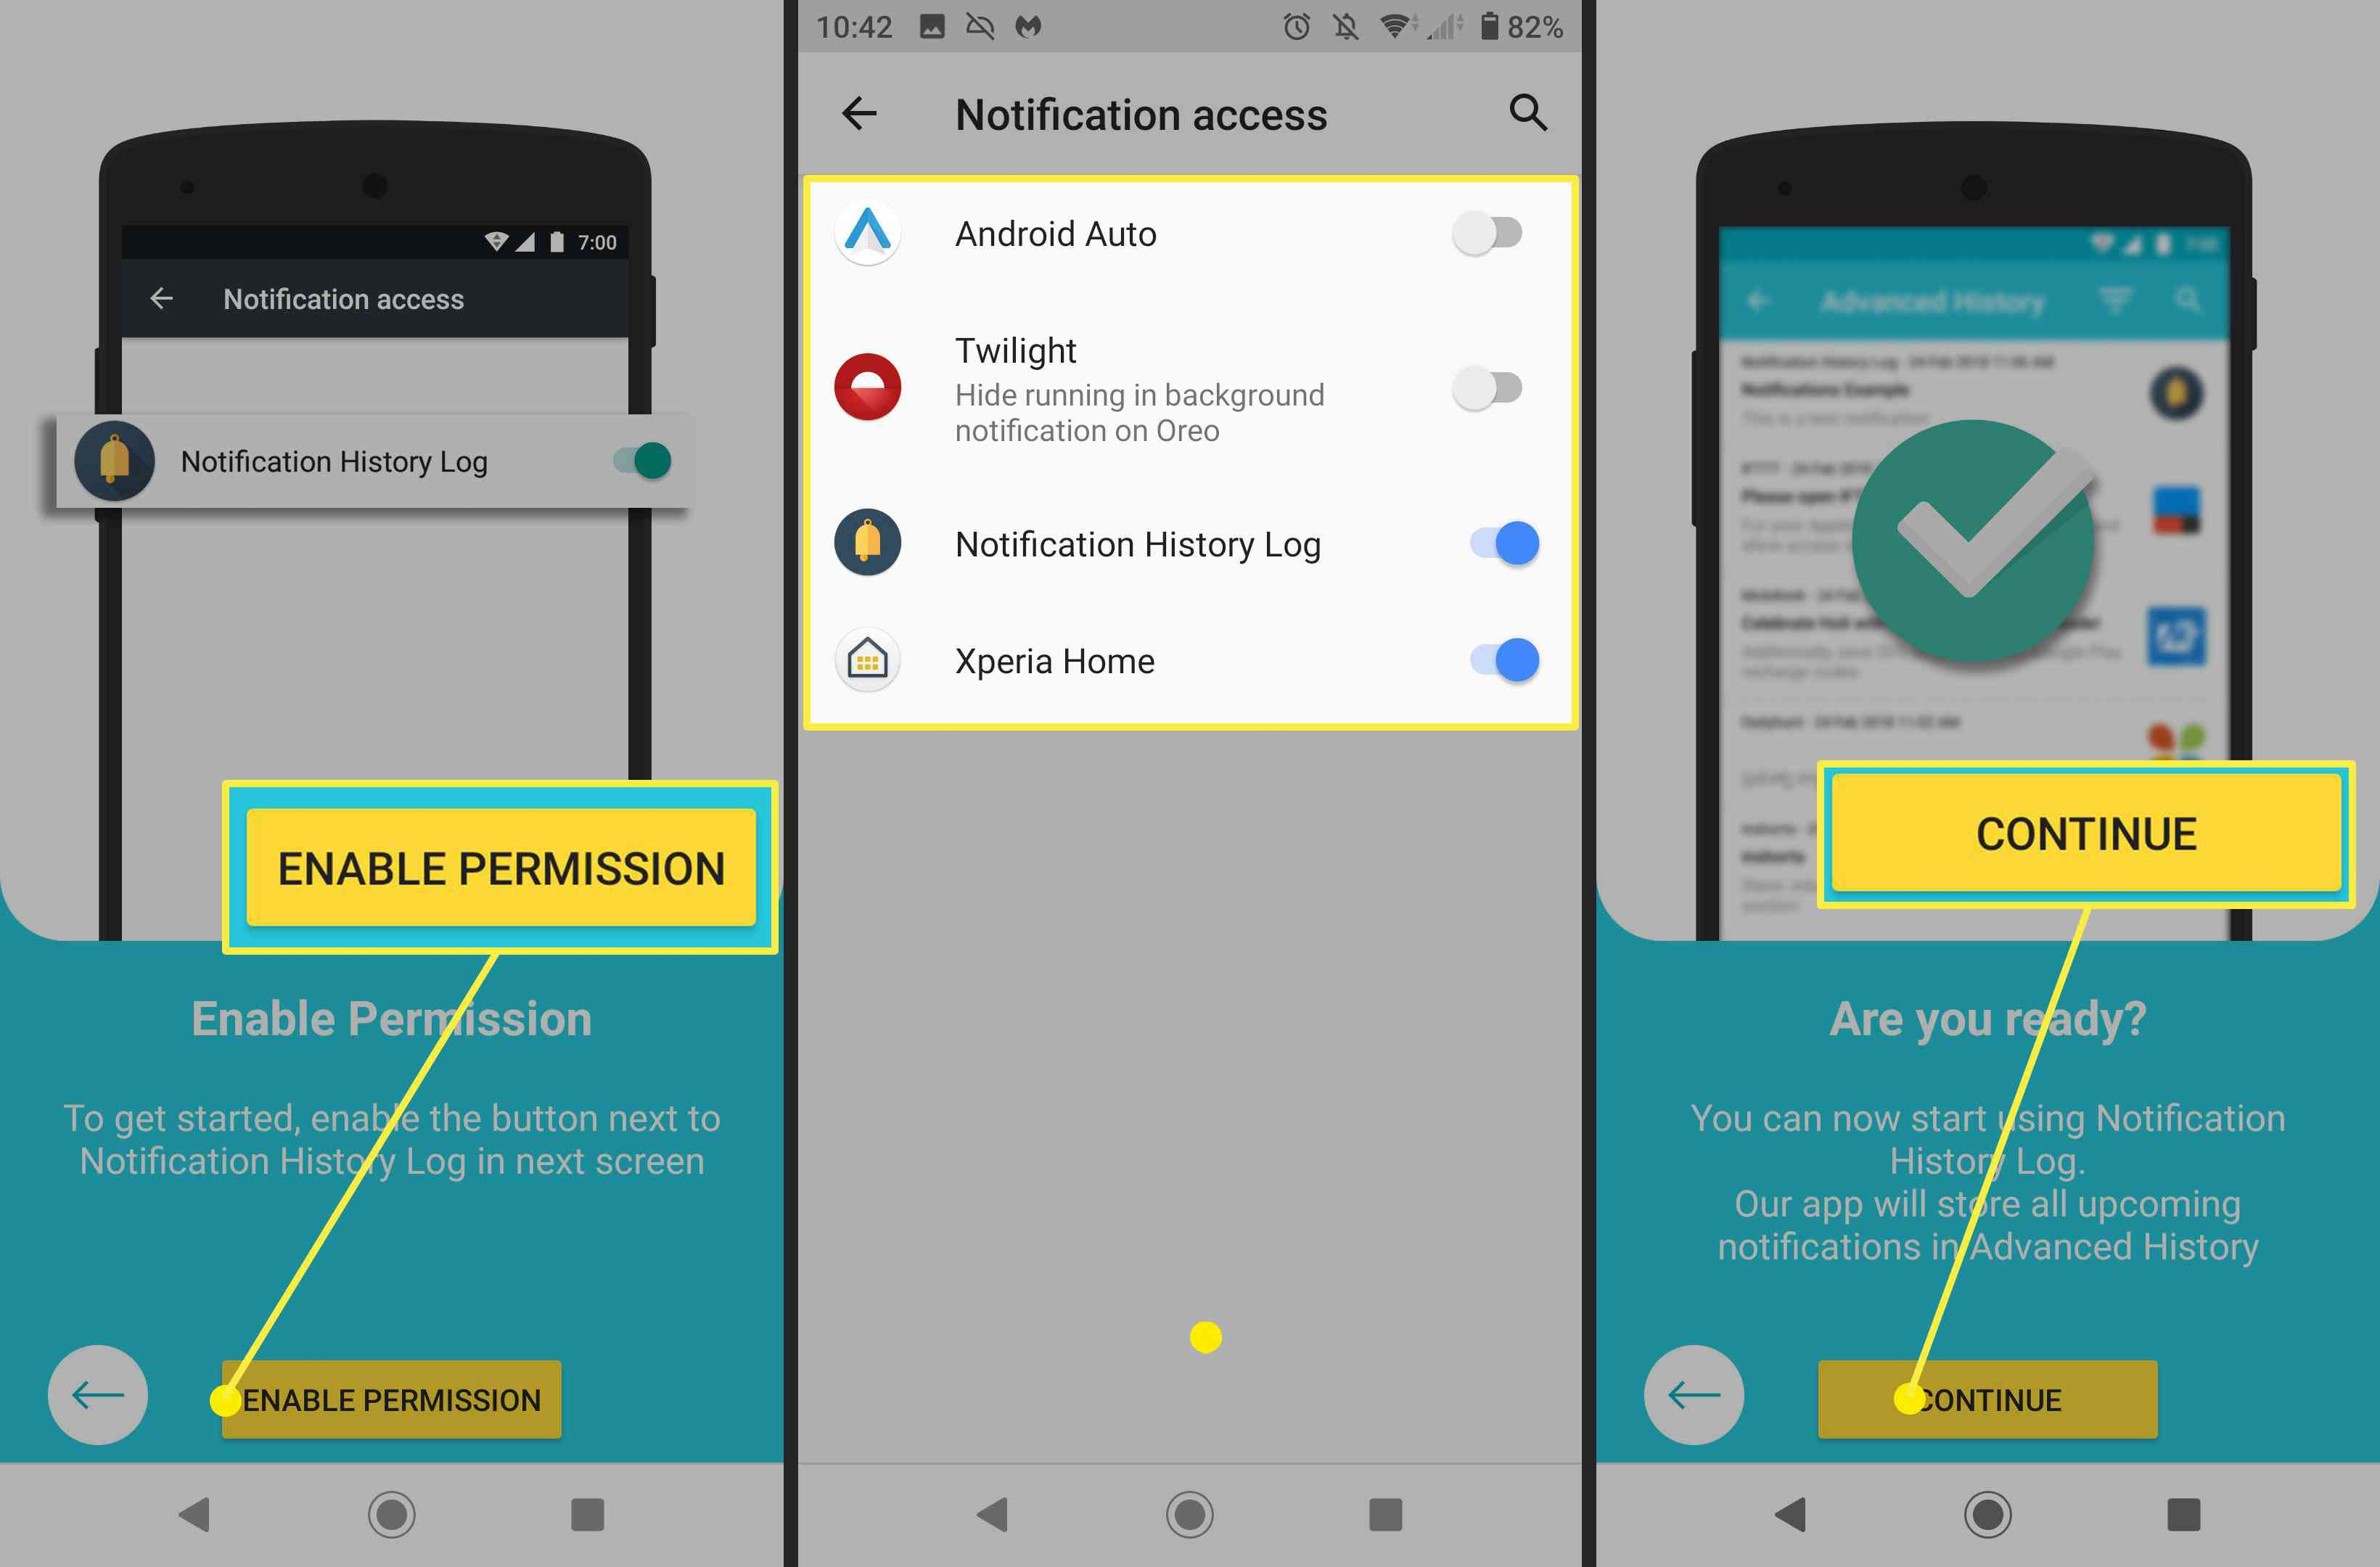 How to enable notifications on the Notification History Log app.